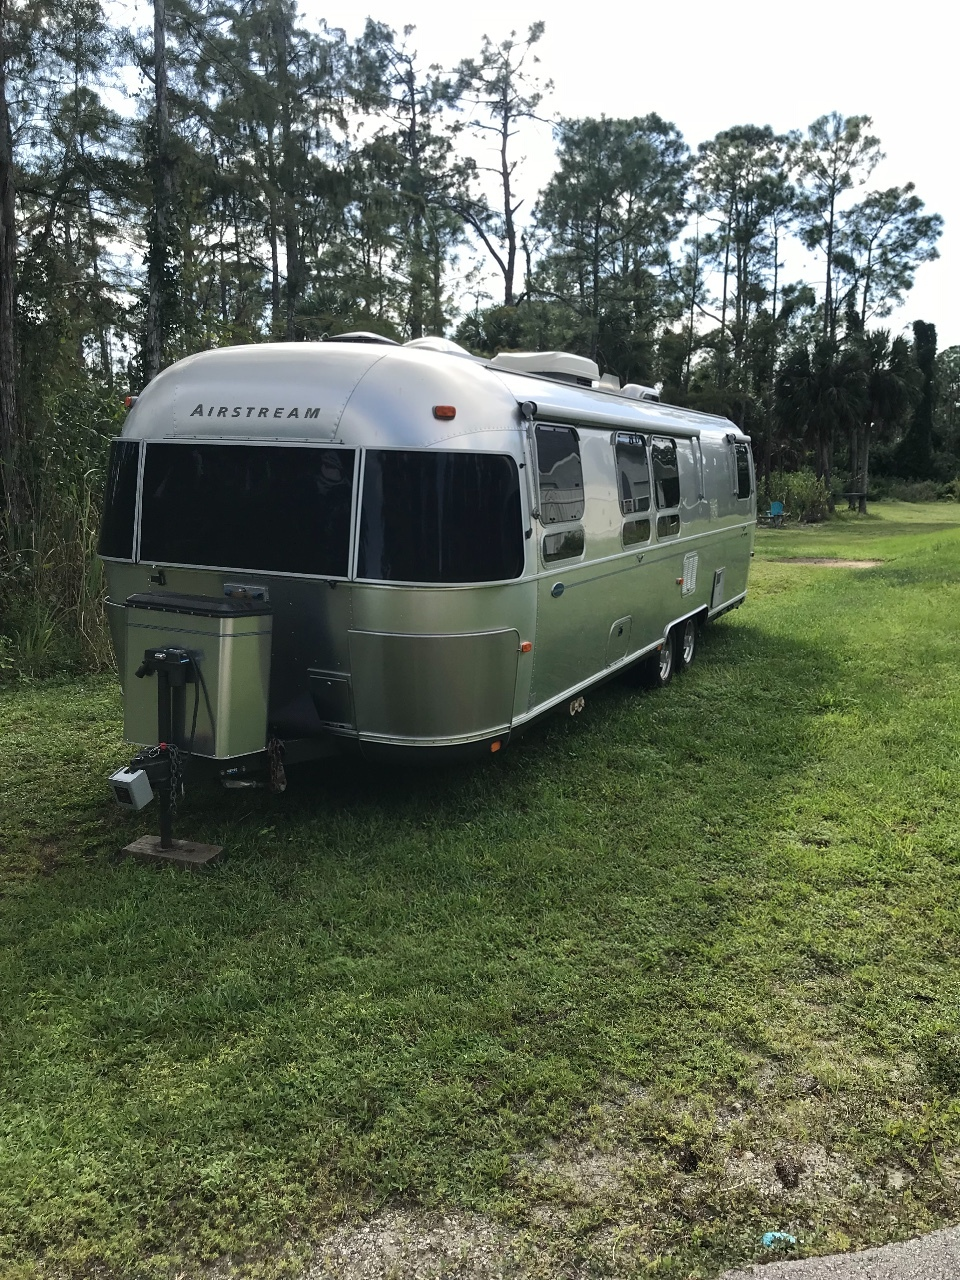 Airstream Classic Rvs For Sale 97 Rv Trader Wiring Diagram 110v